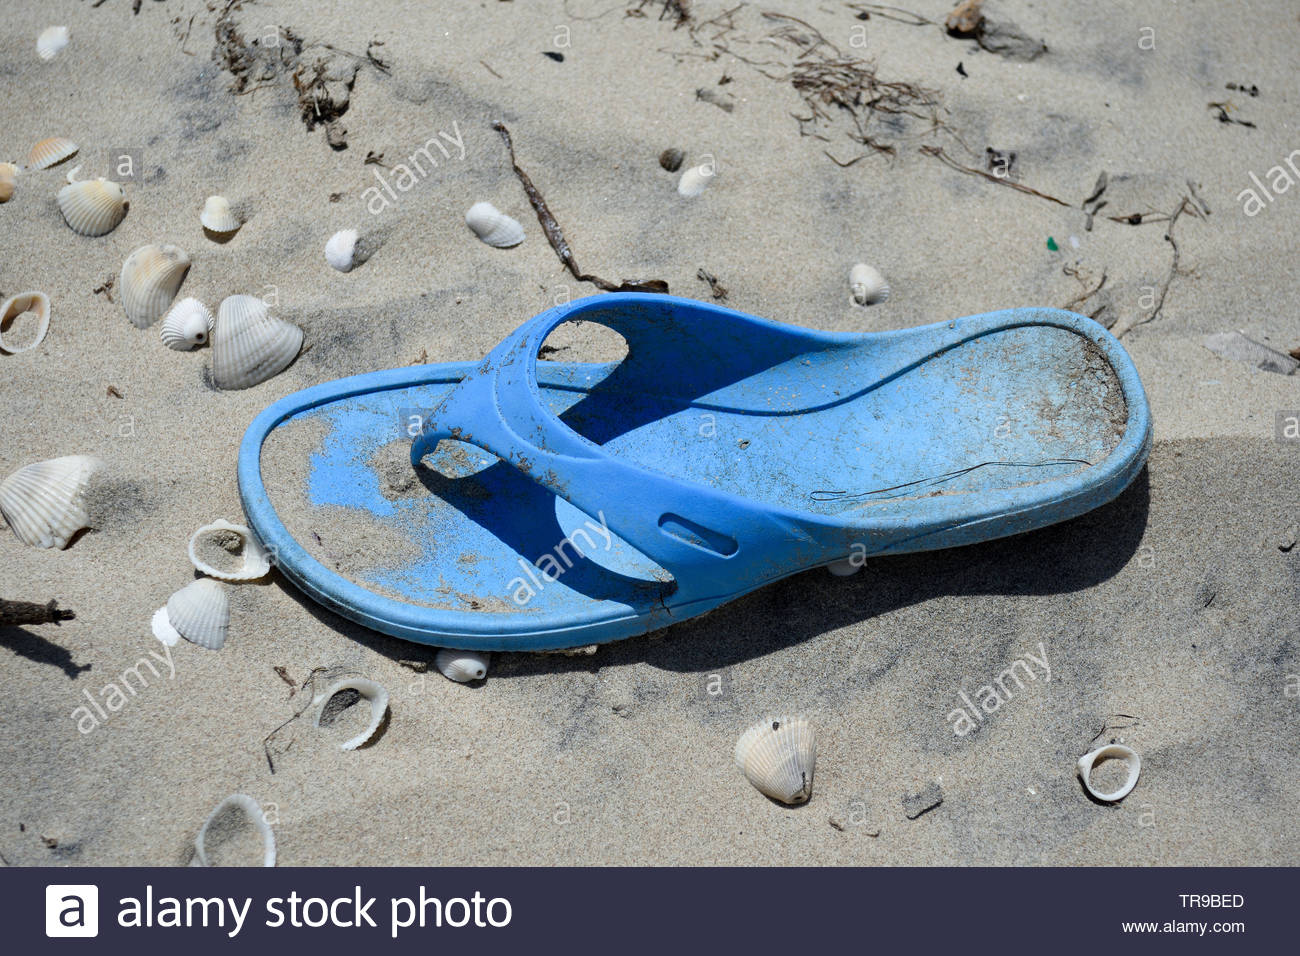 Abandoned Flip Flop on Beach. Abandoned Sandal on Beach with Seashells. Abandoned Thong on Beach. Seashells Abandoned Thong Flip Flop. Seashells, sand - Stock Image